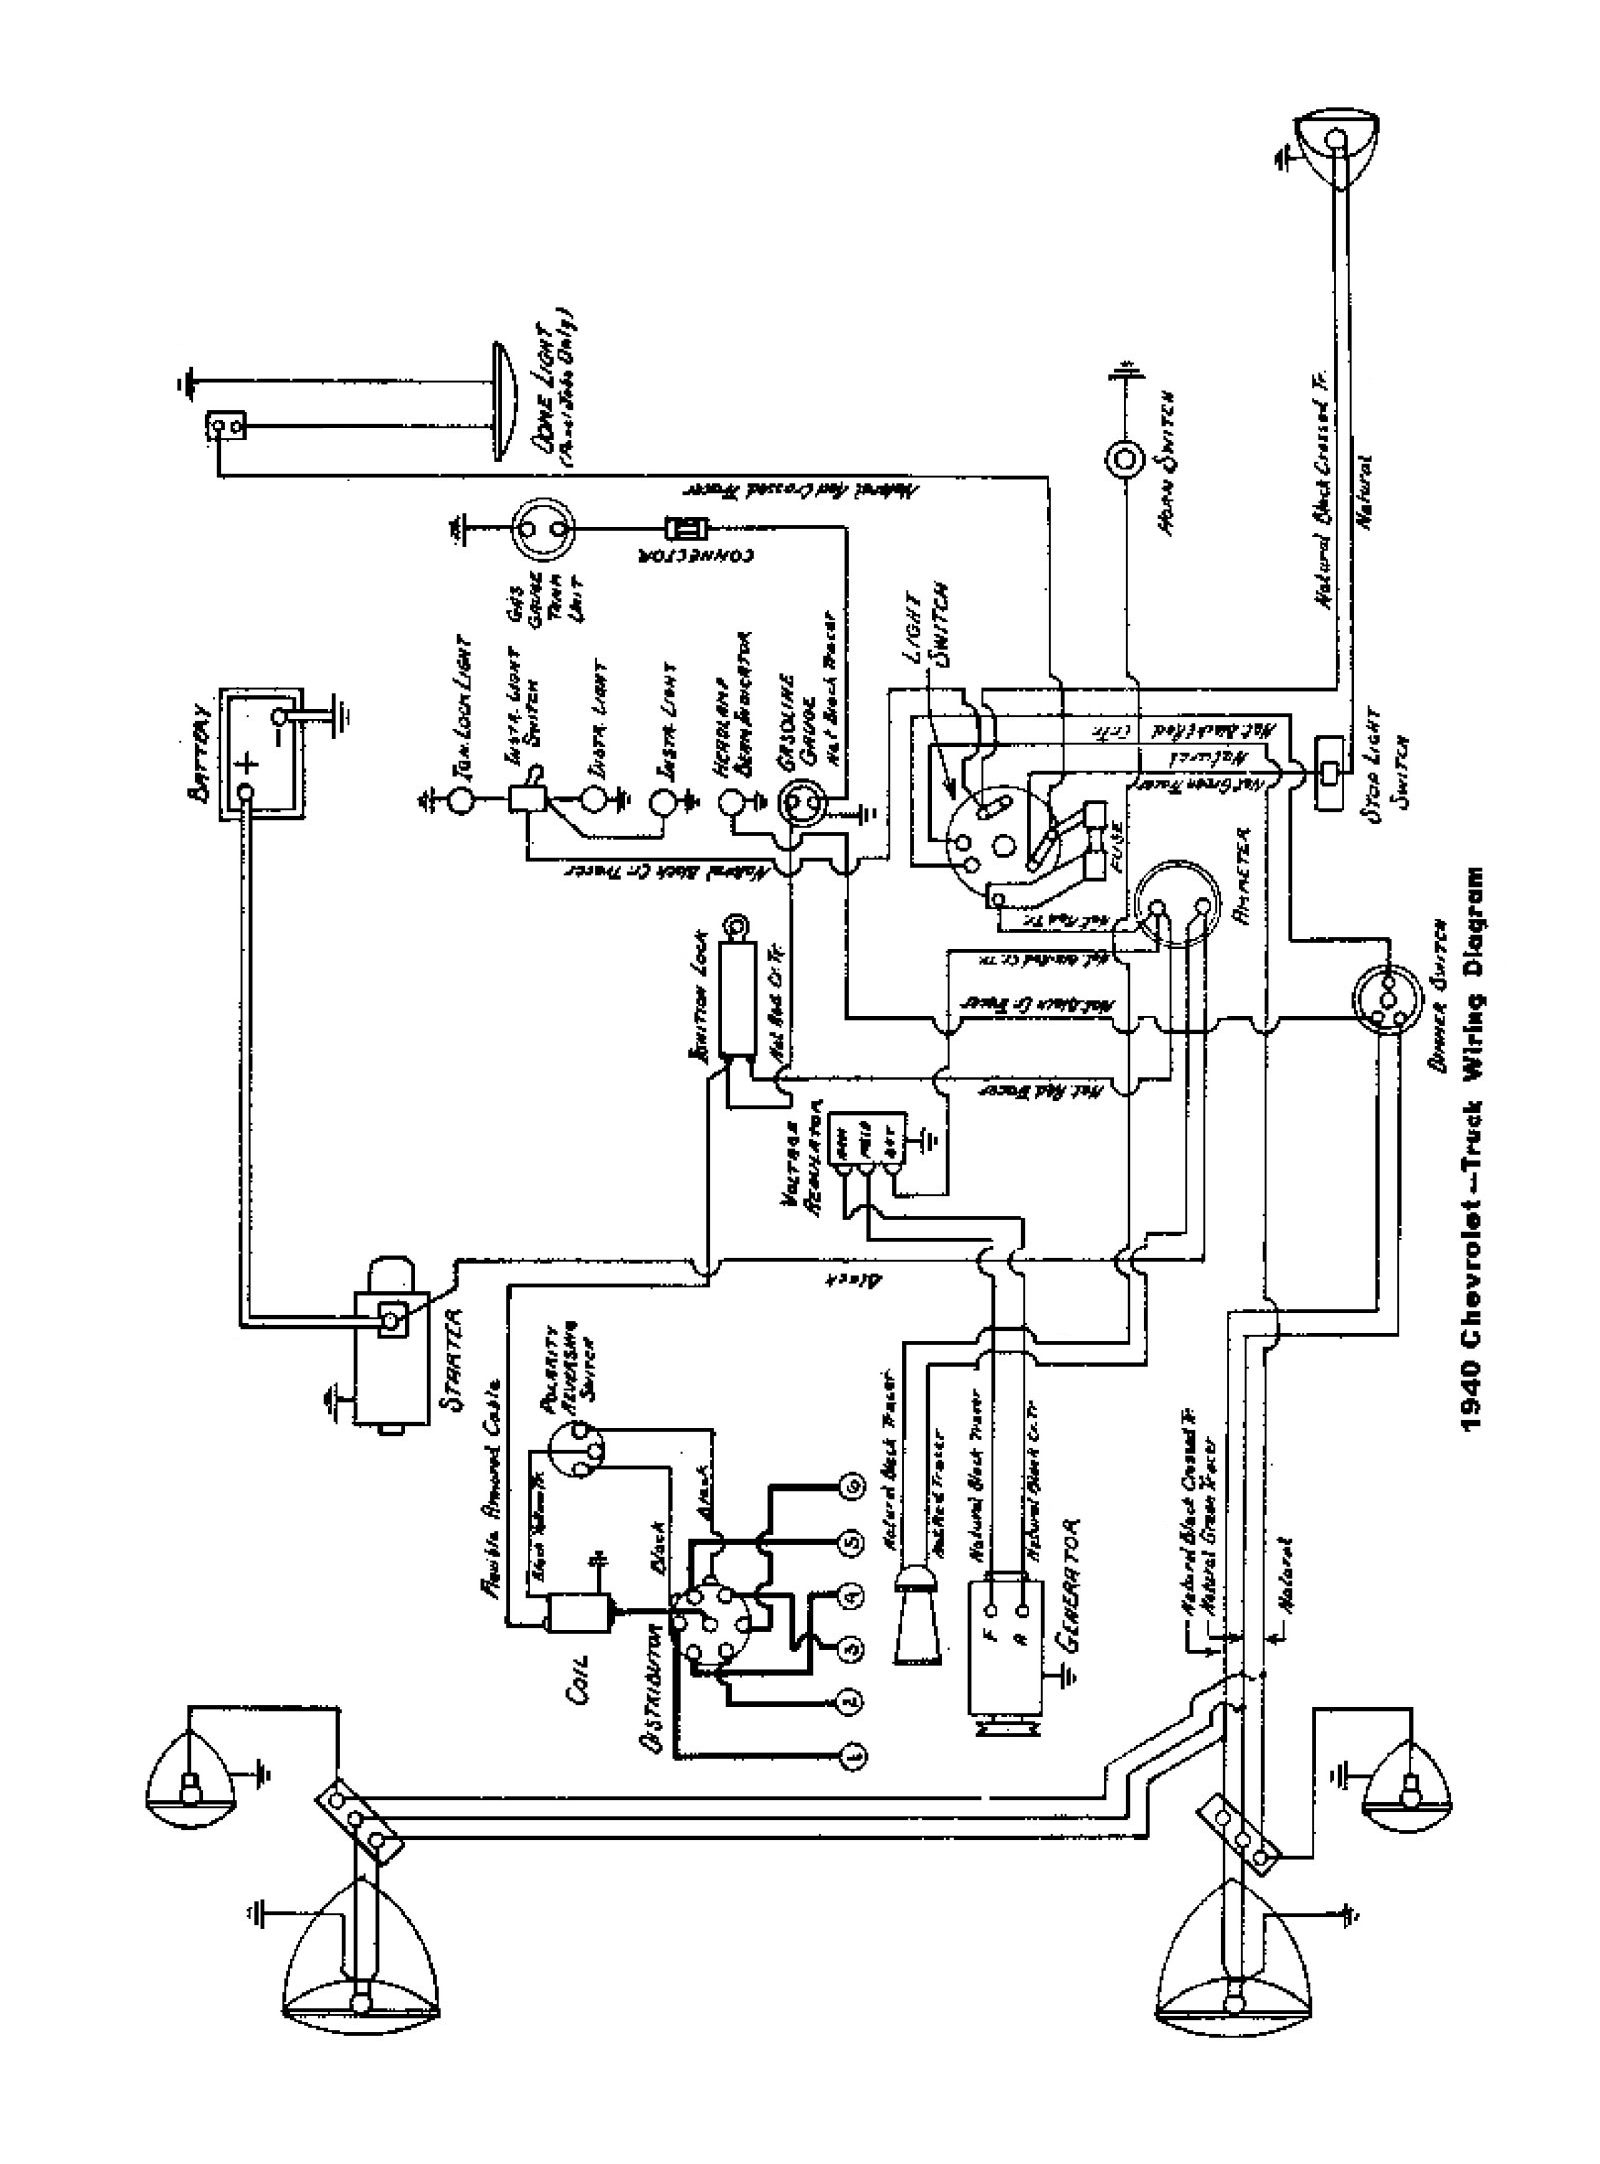 hight resolution of 1954 dodge truck wiring diagram wiring diagram third level international truck fuse 1947 dodge wiring diagram